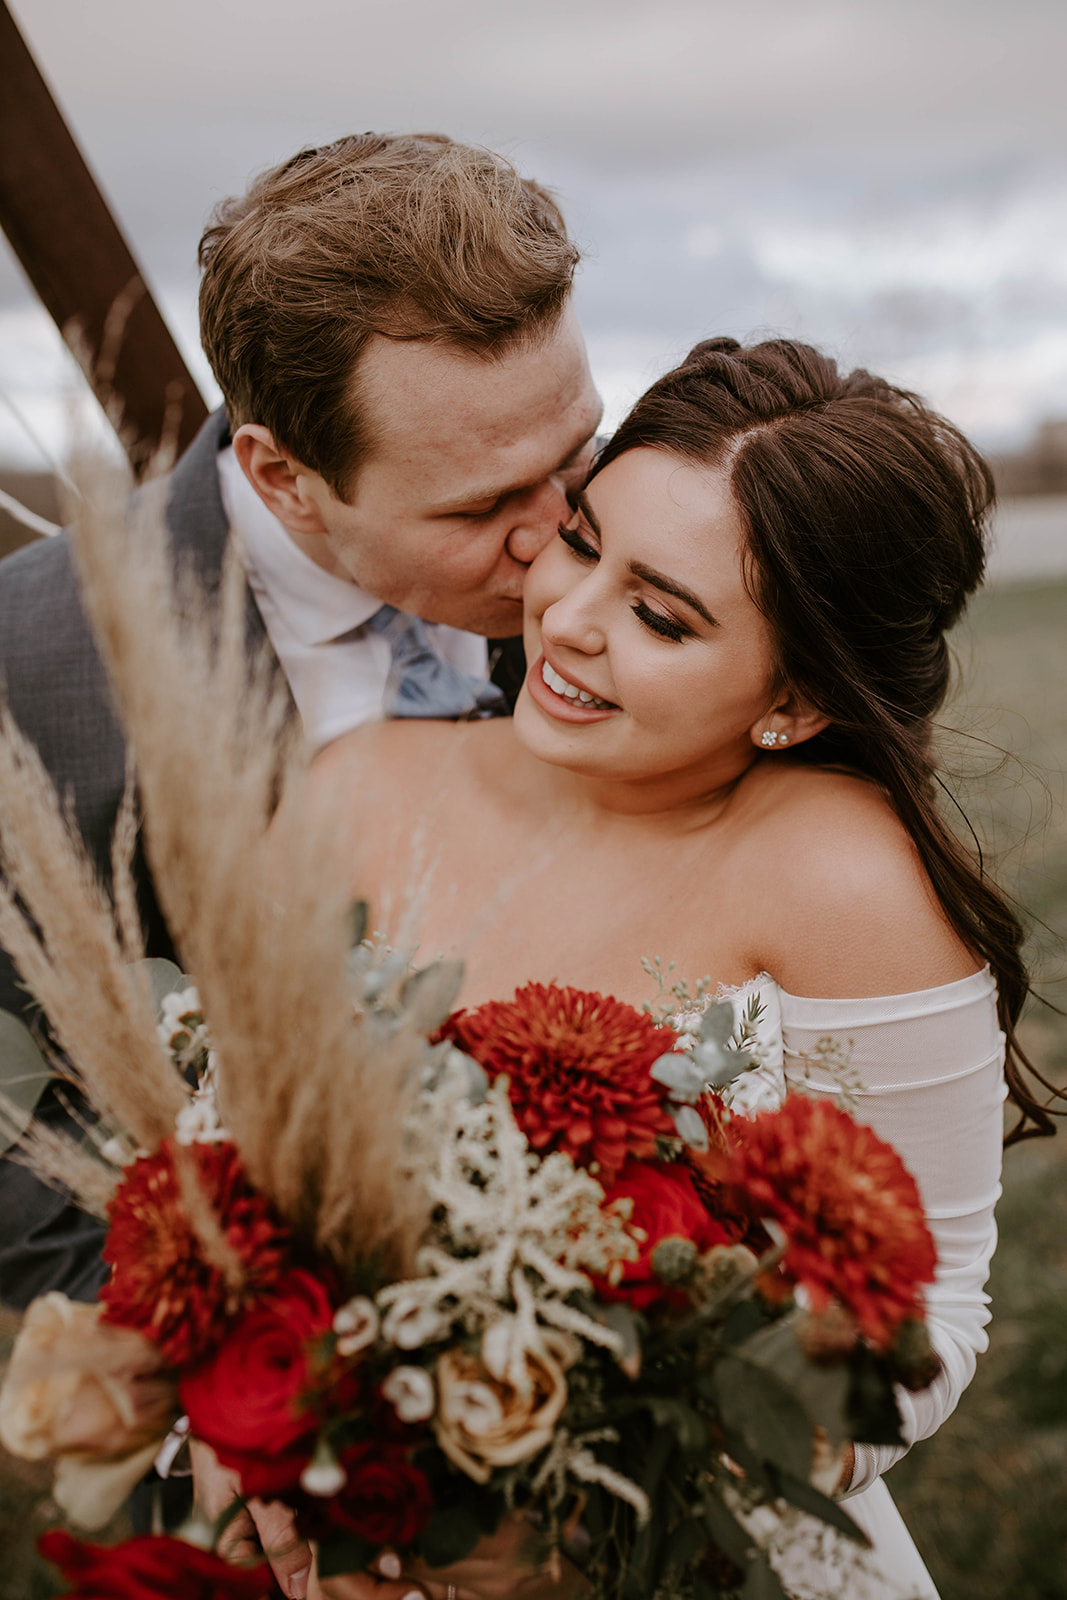 Nashville wedding photography: Surprise Vow Renewal by Tara Winstead Photography featured on Nashville Bride Guide